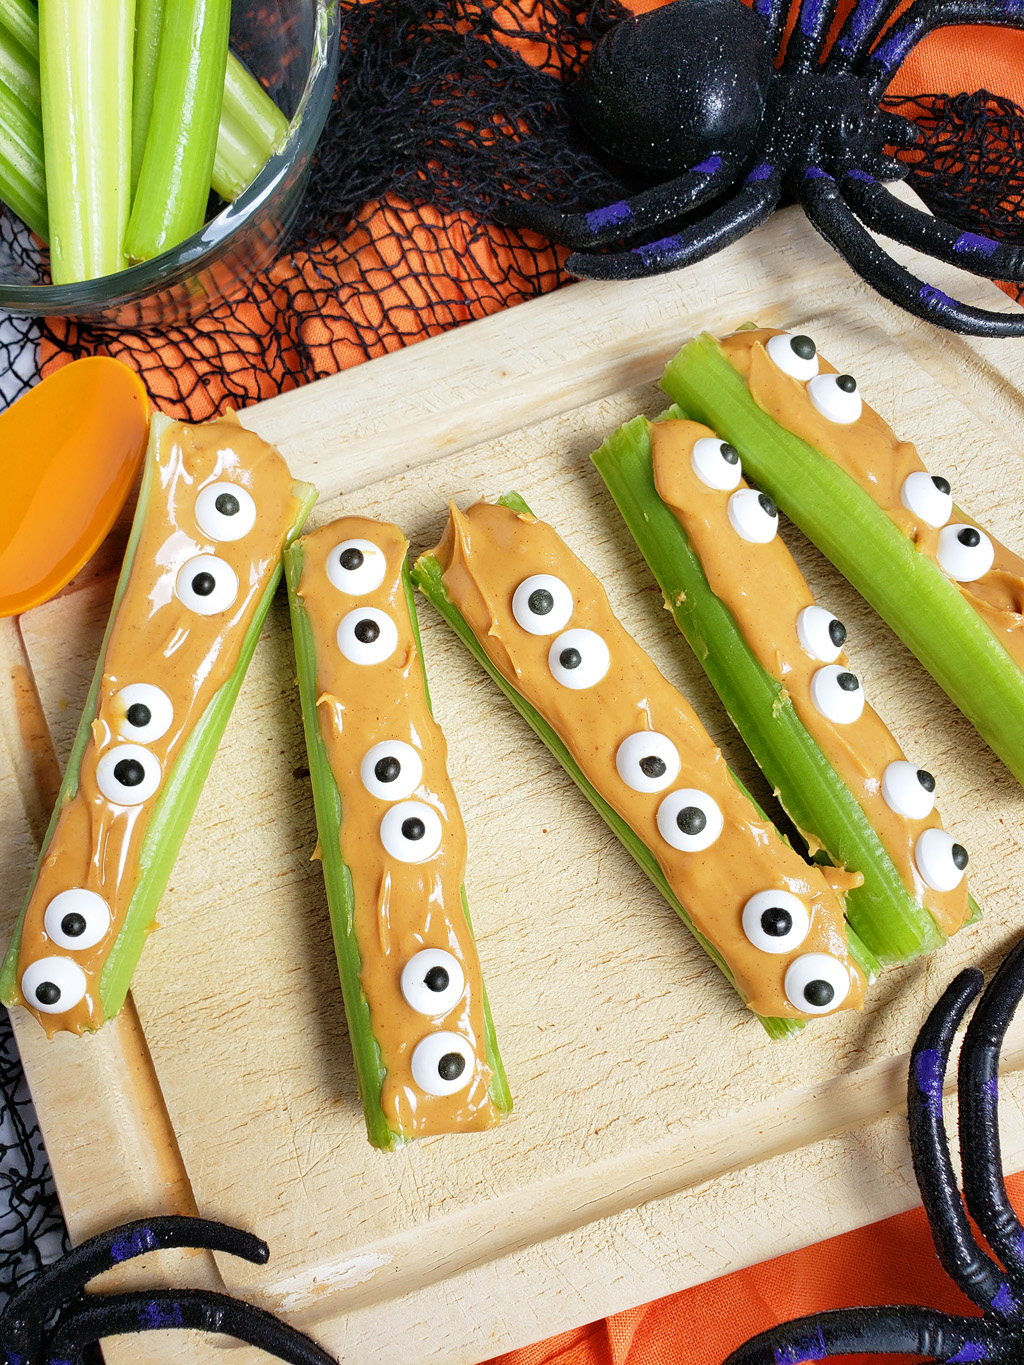 spooky monsters on a log made with celery sticks, peanut butter and candy eyes